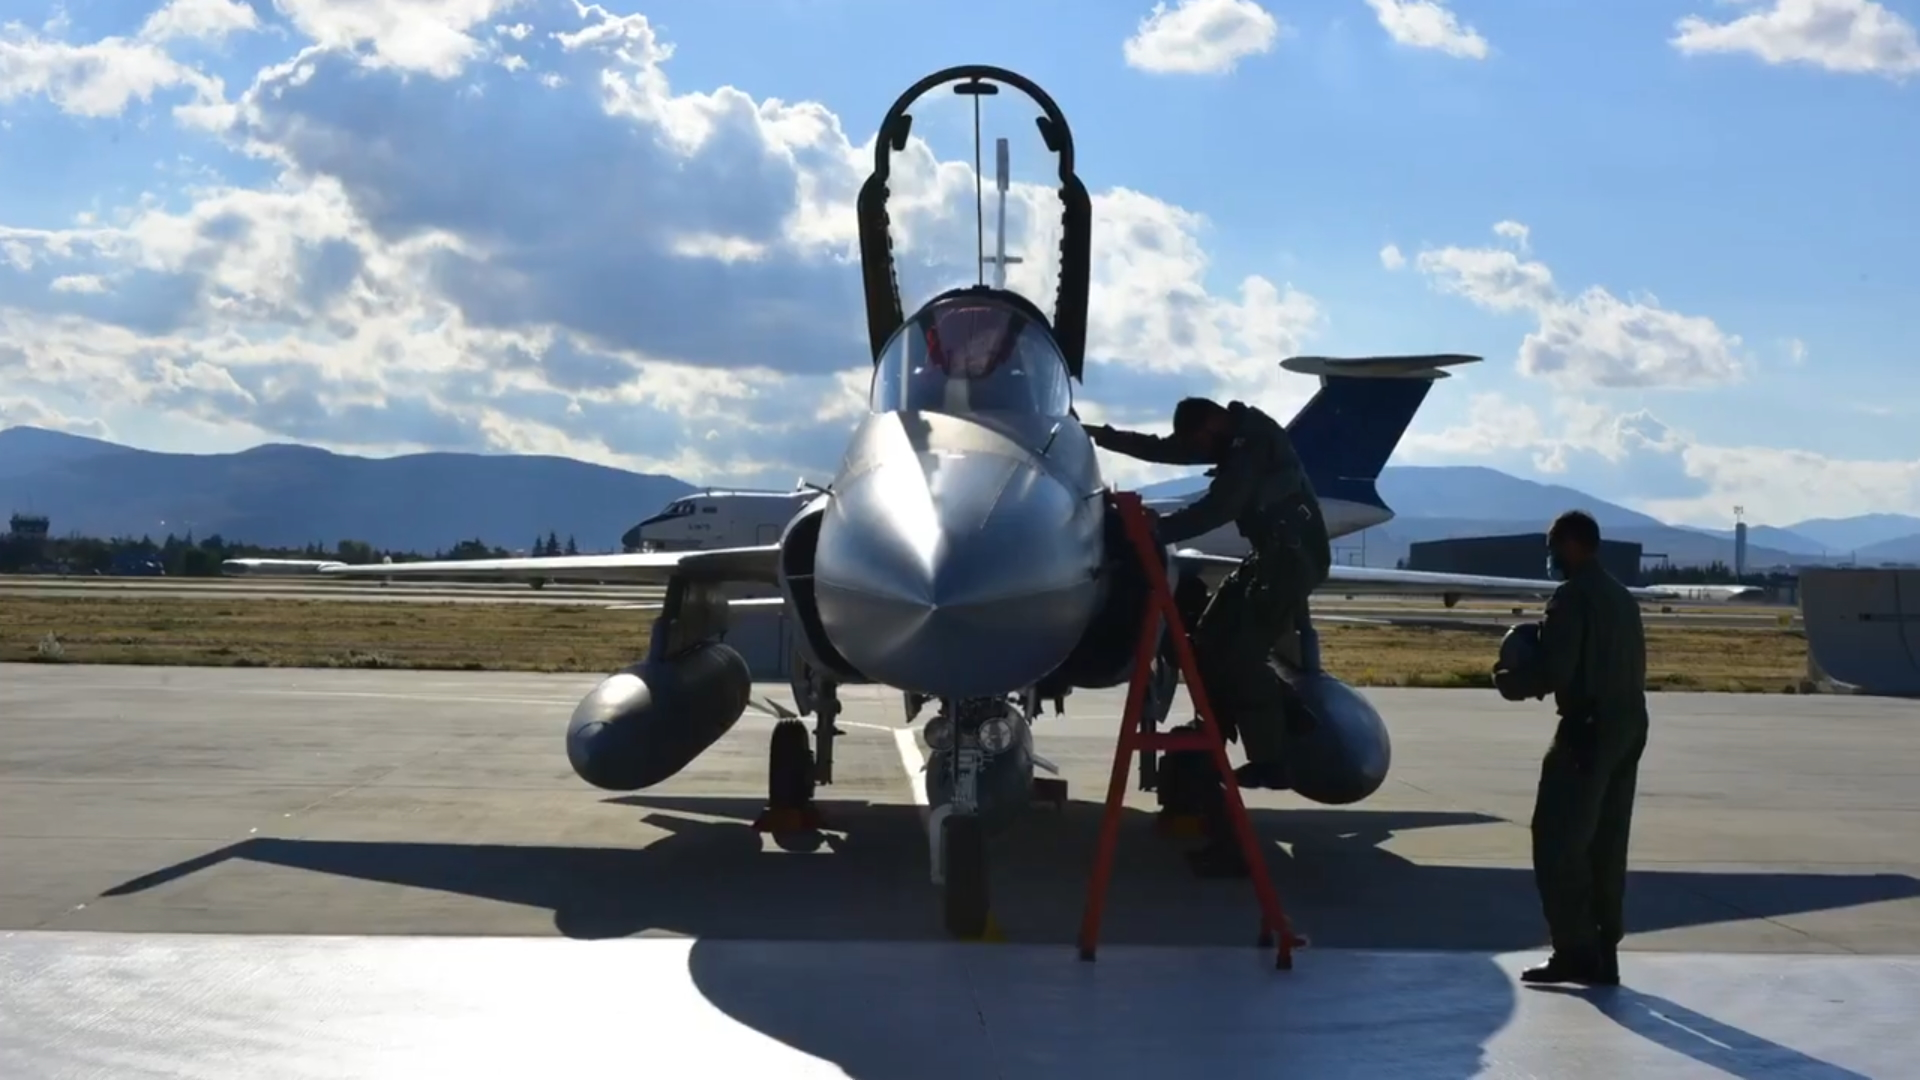 The International Anatolian Eagle-2021 Exercise Begins in June with The Participation of Allied Countries